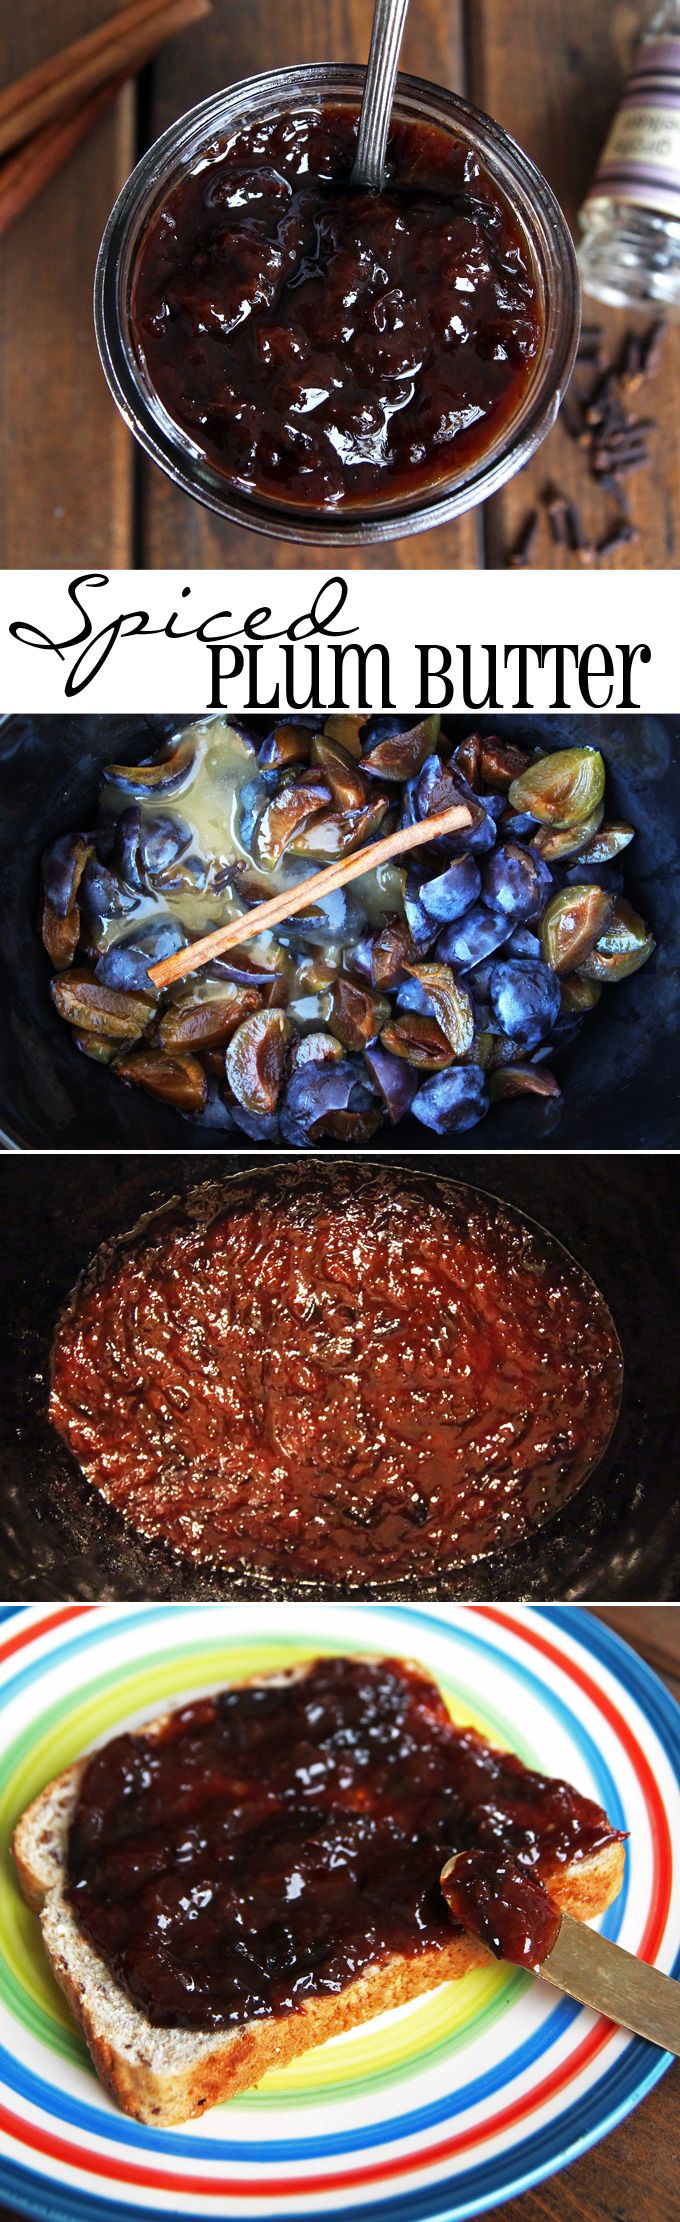 Spiced Plum Butter made in the slow cooker, sweetened with honey only